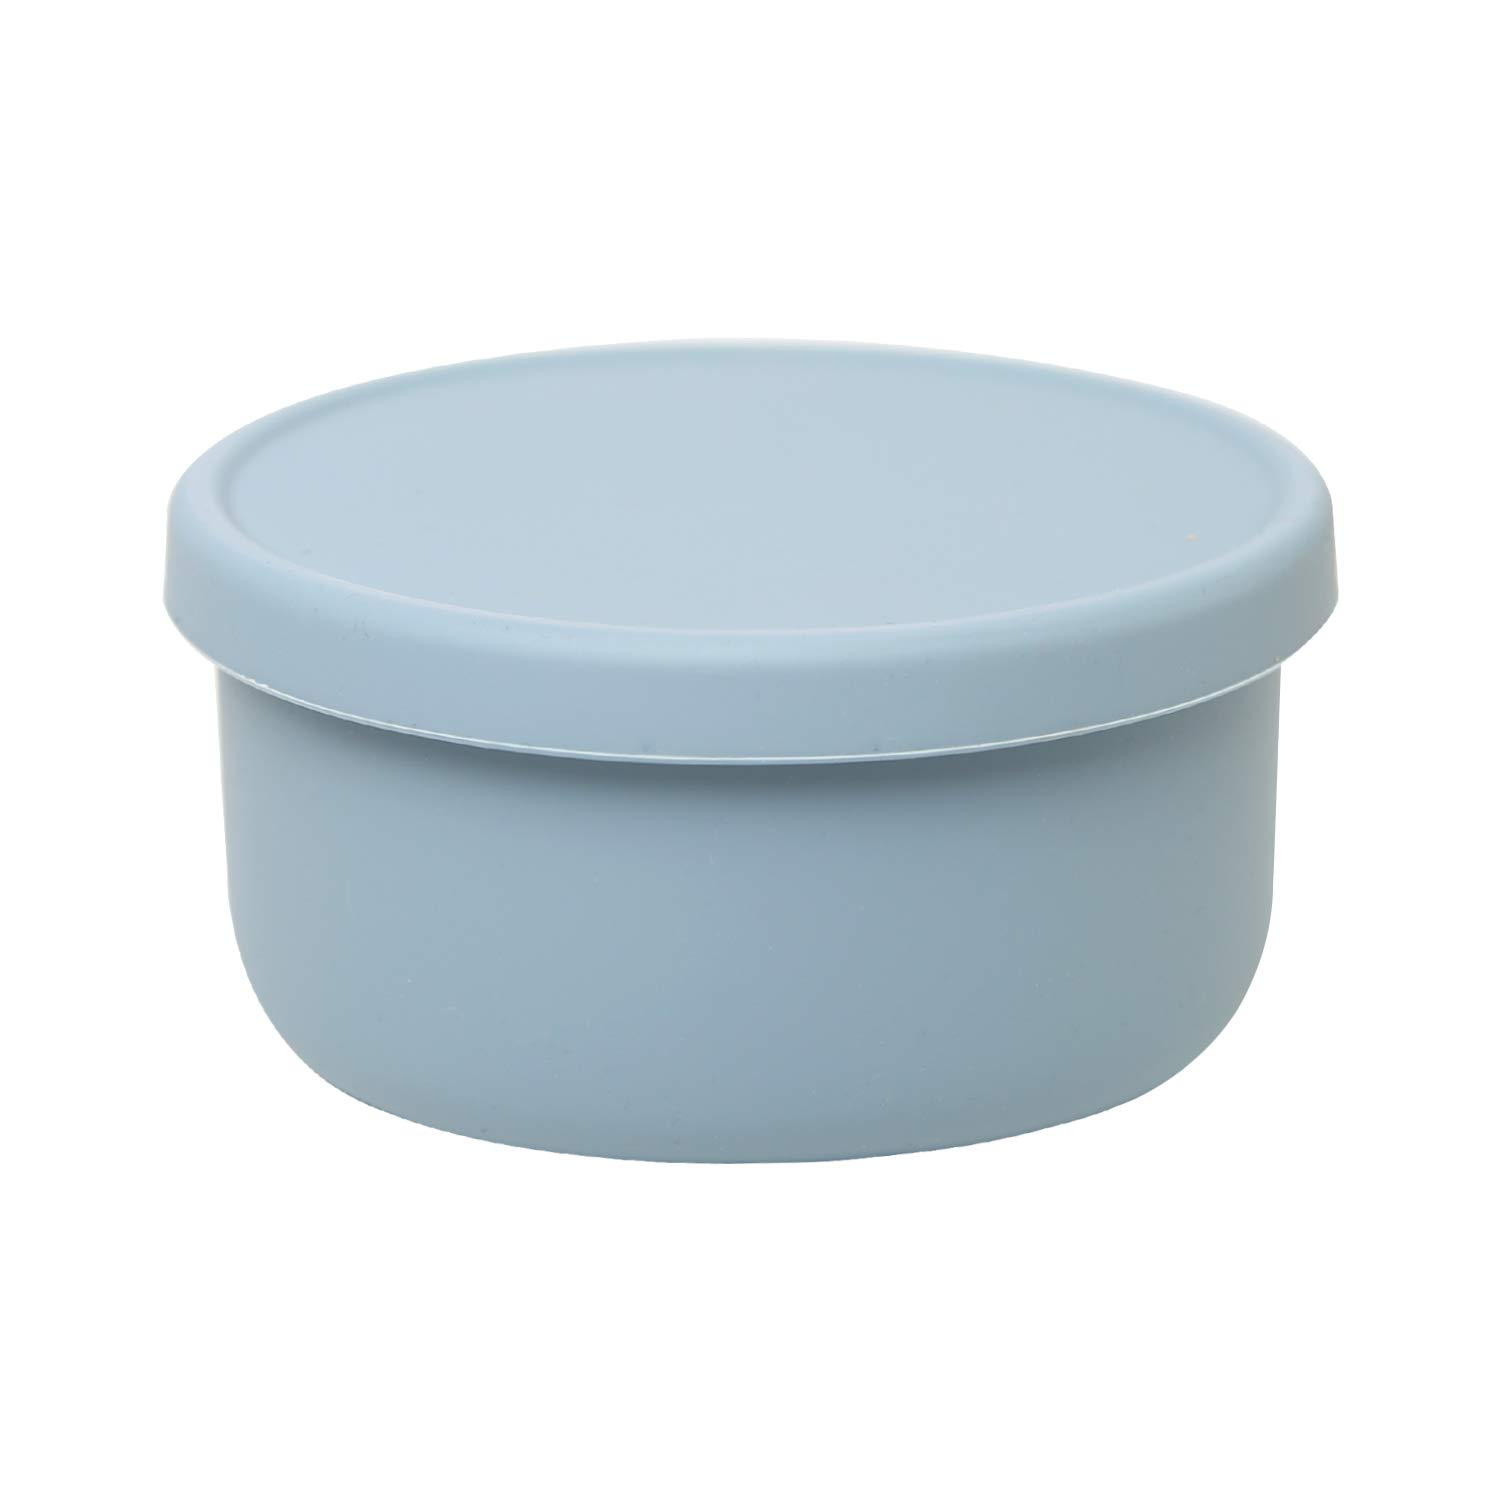 Silicone Baby Food Storage Freezer Containers with Lids  BPA-Free Airtight Leak-Proof Baby Food Jars   Dishwasher, Microwave, Refrigerator Safe,23.67OZ,Grey